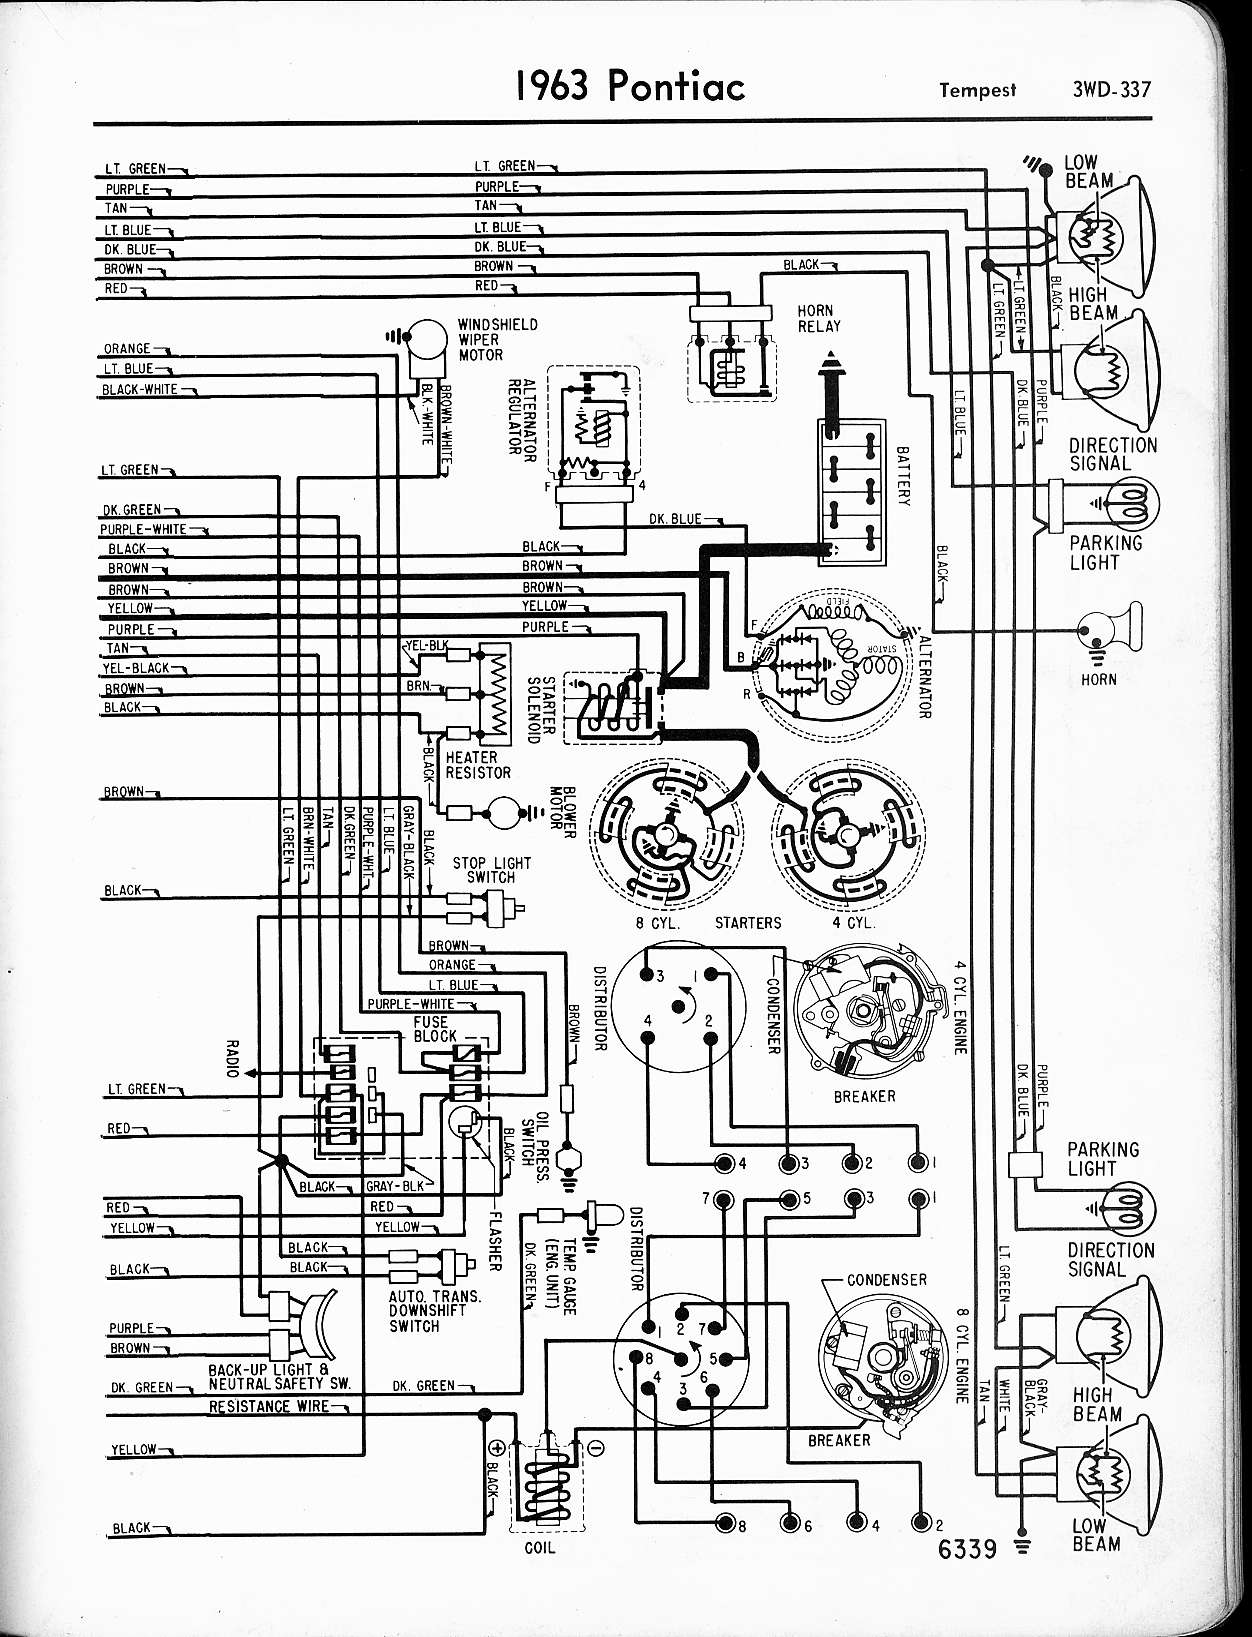 1965 Pontiac Wiring Diagram Archive Of Automotive 65 Gto Turn Signal 1957 Rh Oldcarmanualproject Com Parisienne